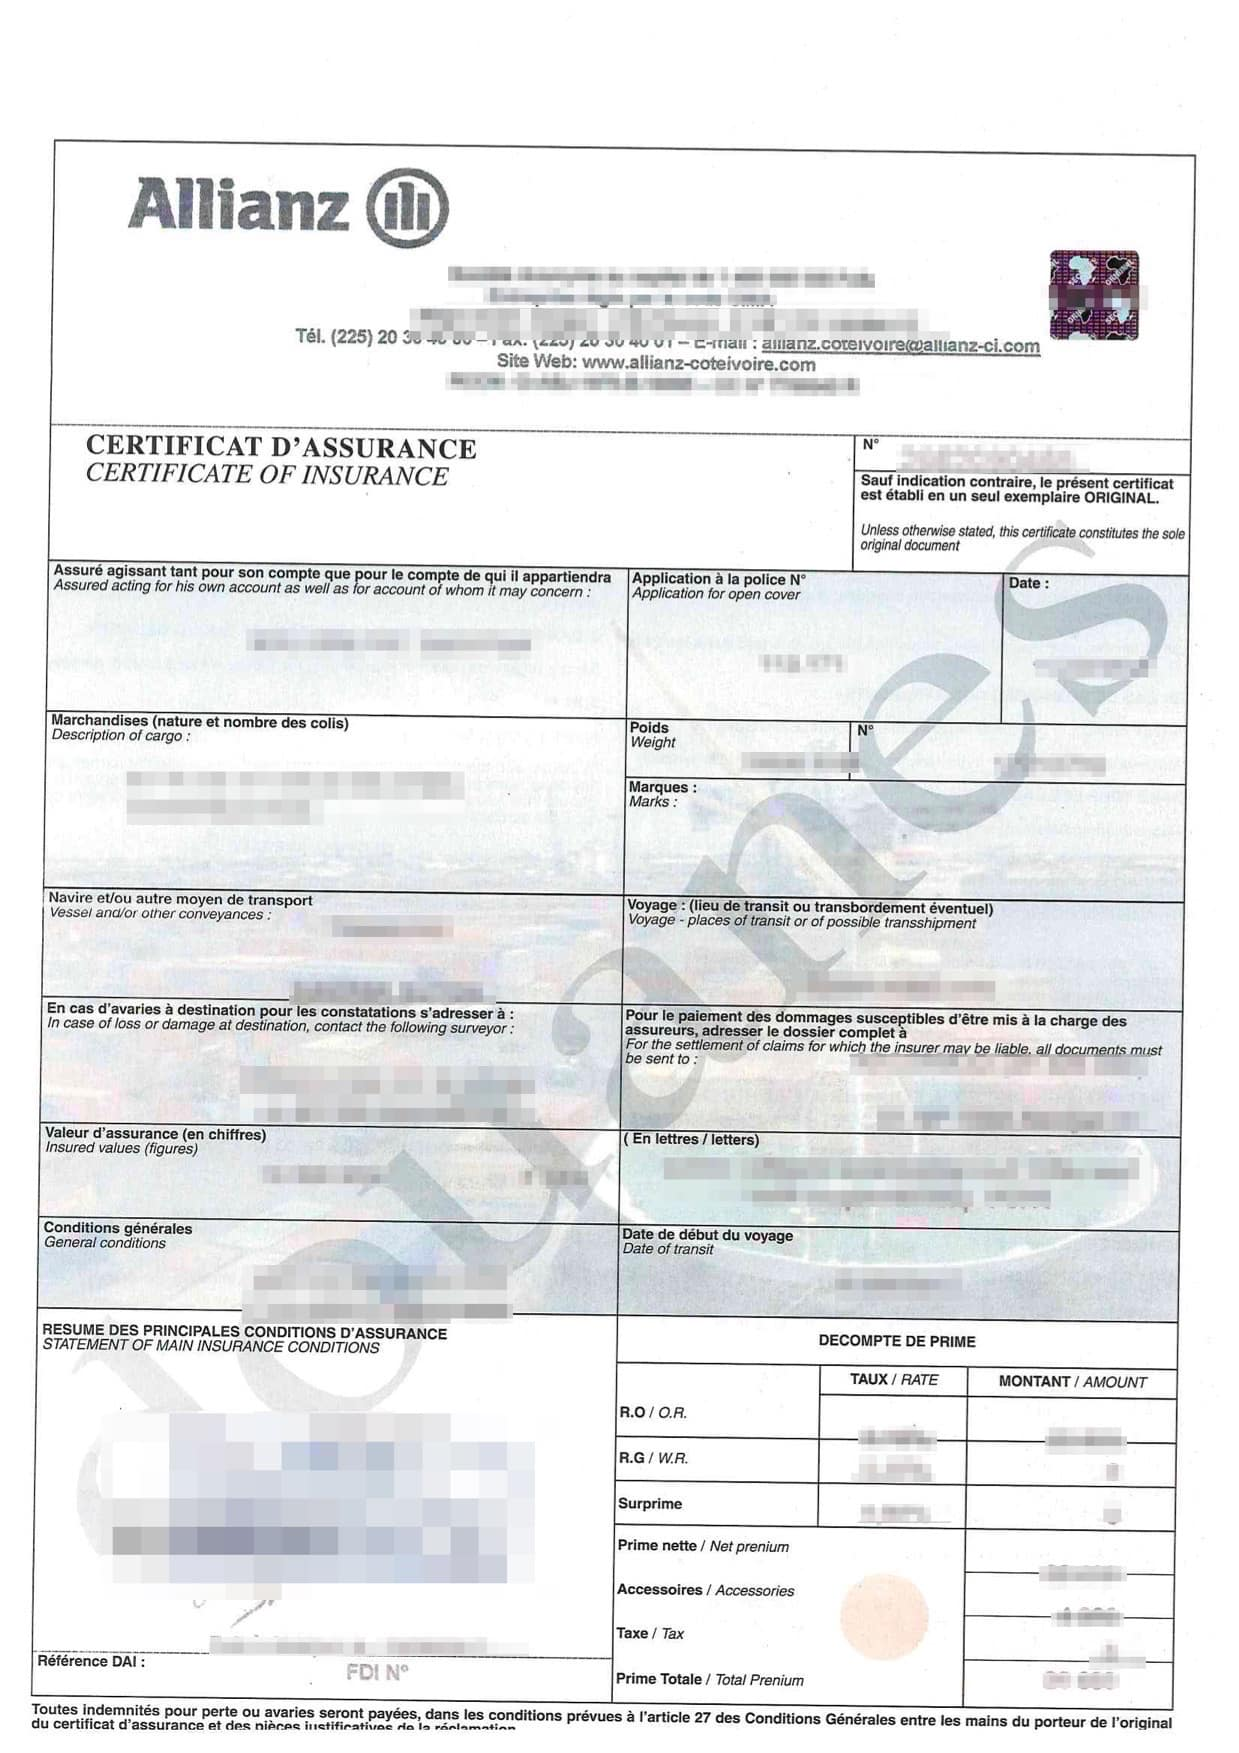 An example of the Certificate of Insurance